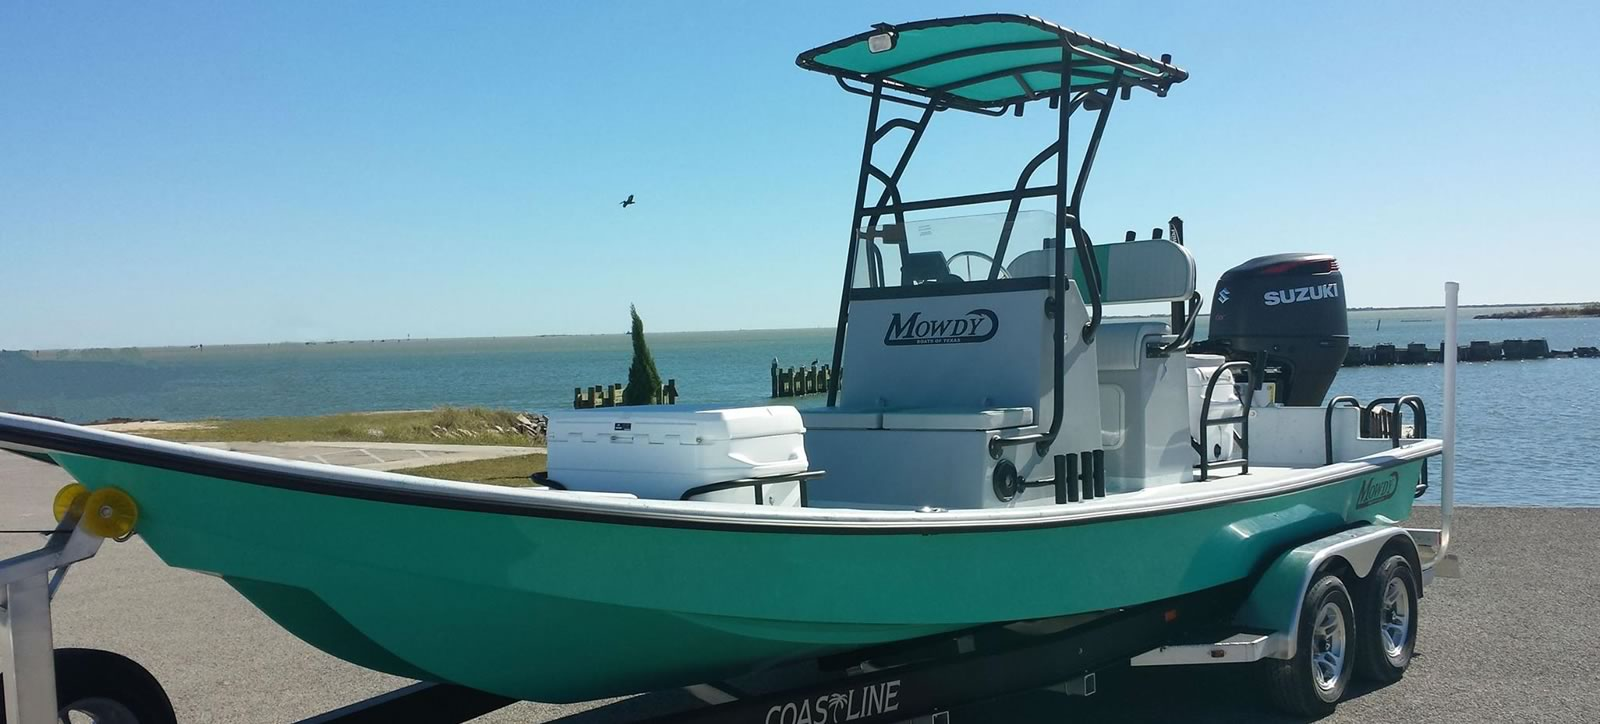 Shallow Water Boats >> Mowdy Boats Shallow Water Offshore Fishing Boats 23 9